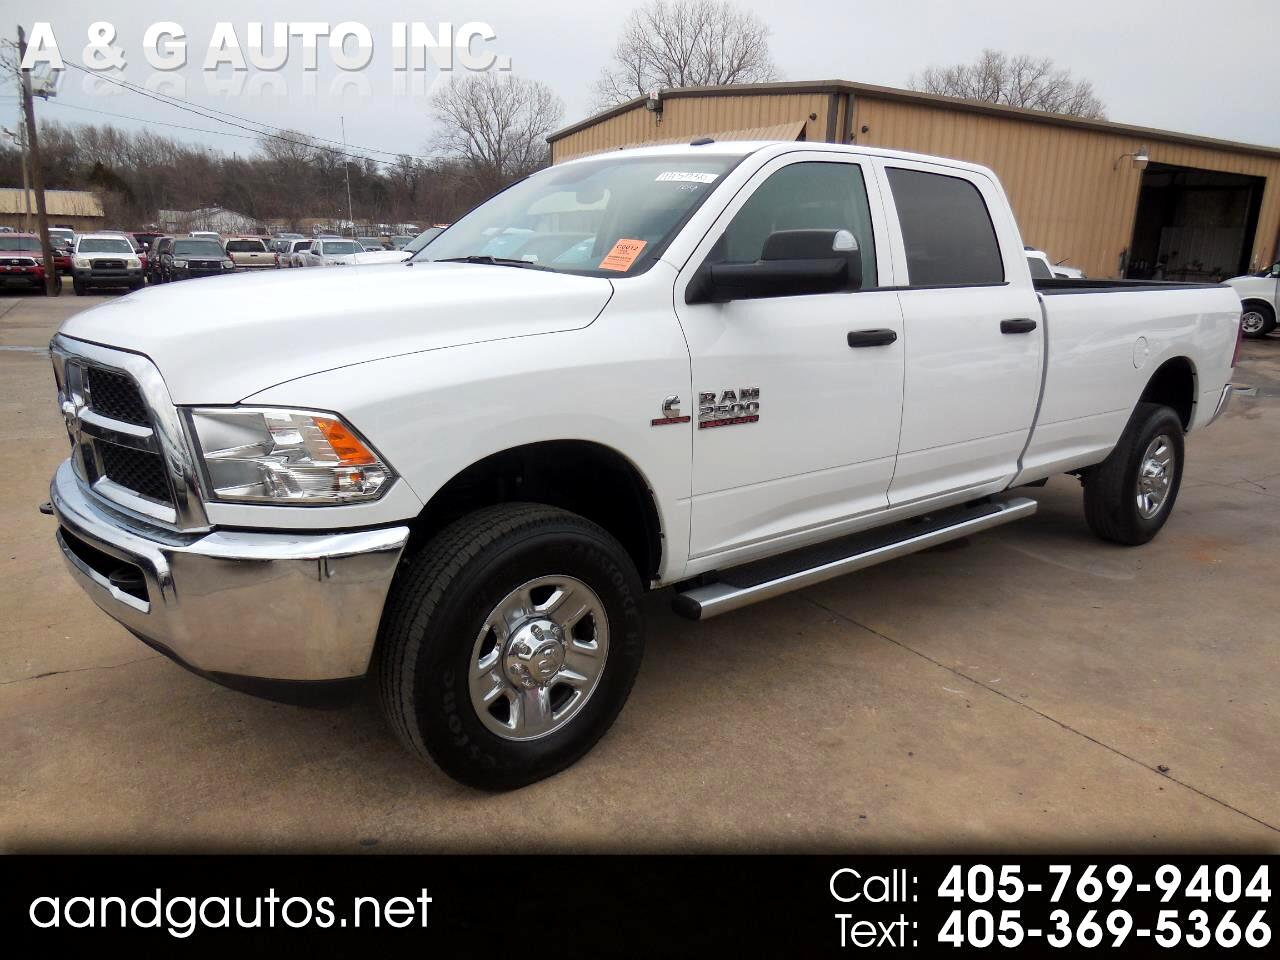 2018 Dodge Ram 2500 TRADE MASTER 4X4  4 DOOR LWB